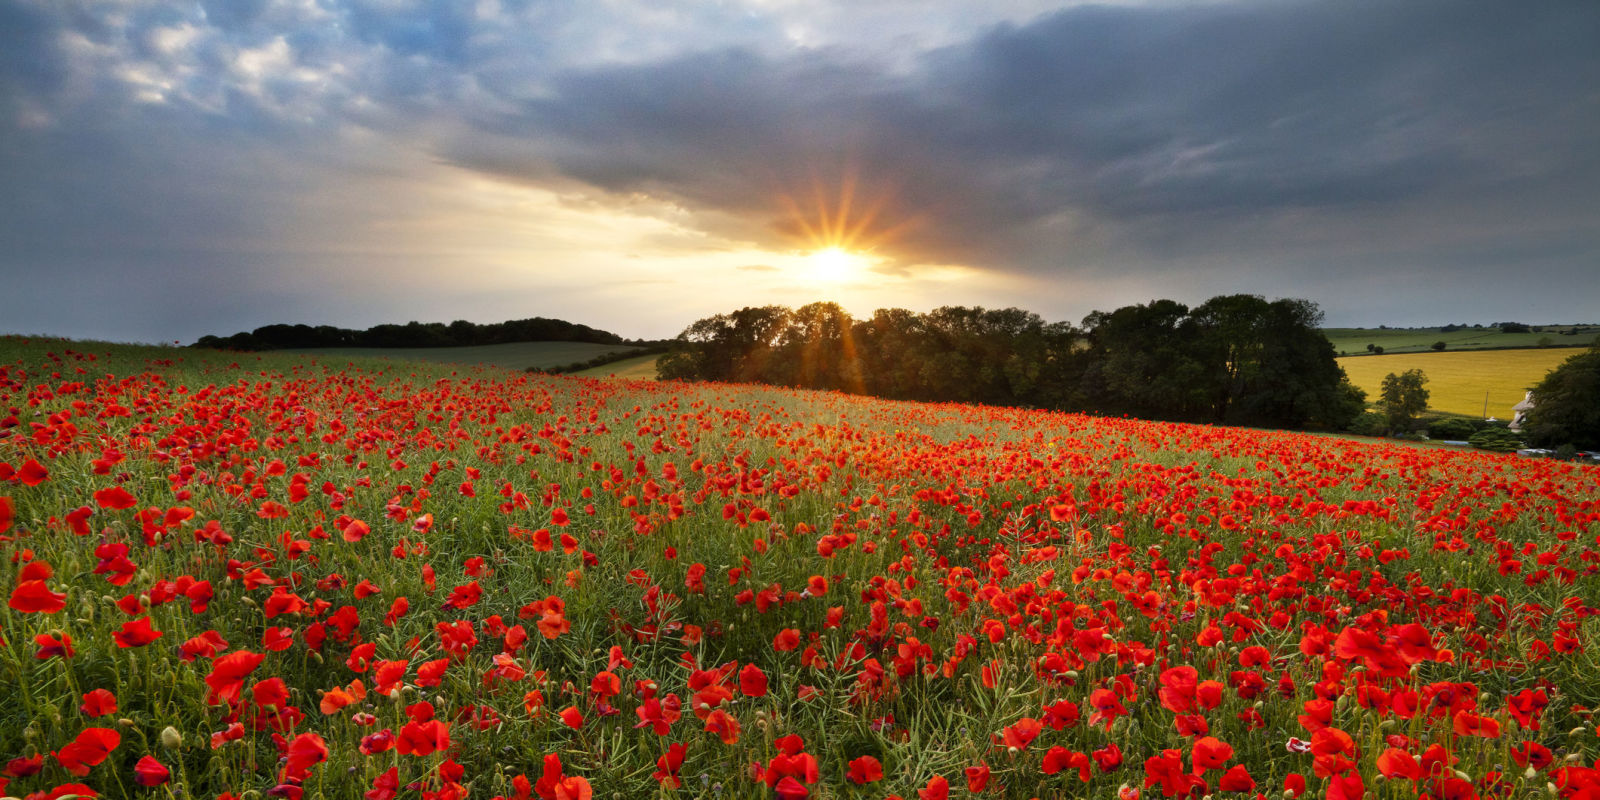 Poppy Flower Symbolism Of Red Poppies Country Living